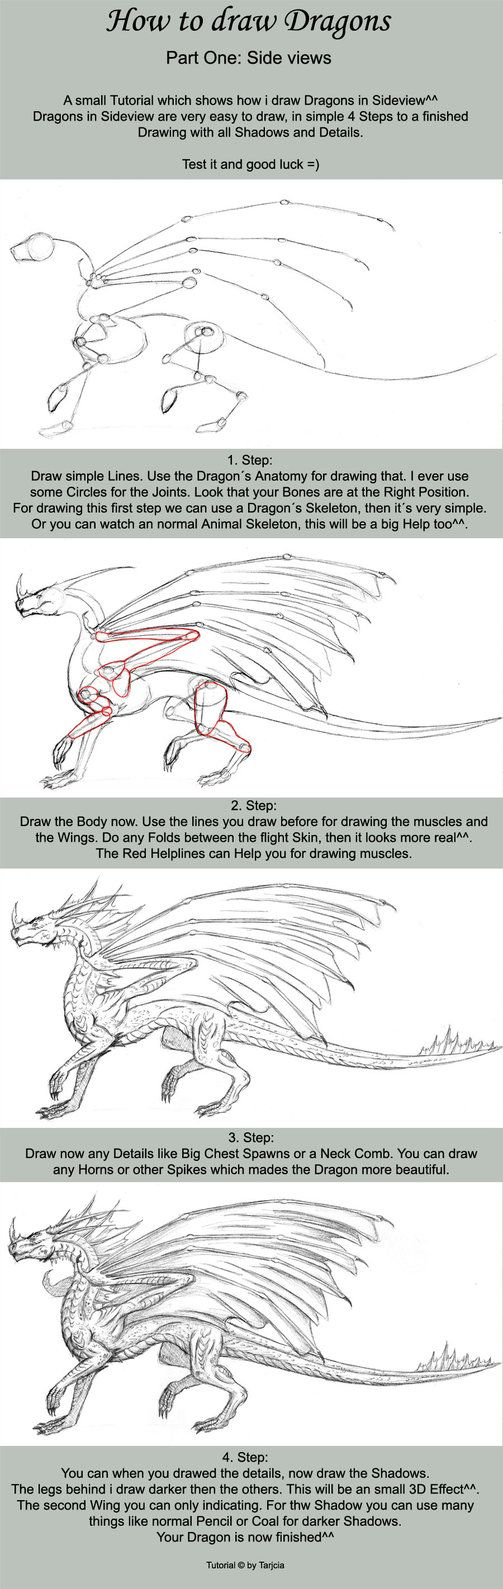 How to draw Dragons Part One by ~Tarjcia on deviantART